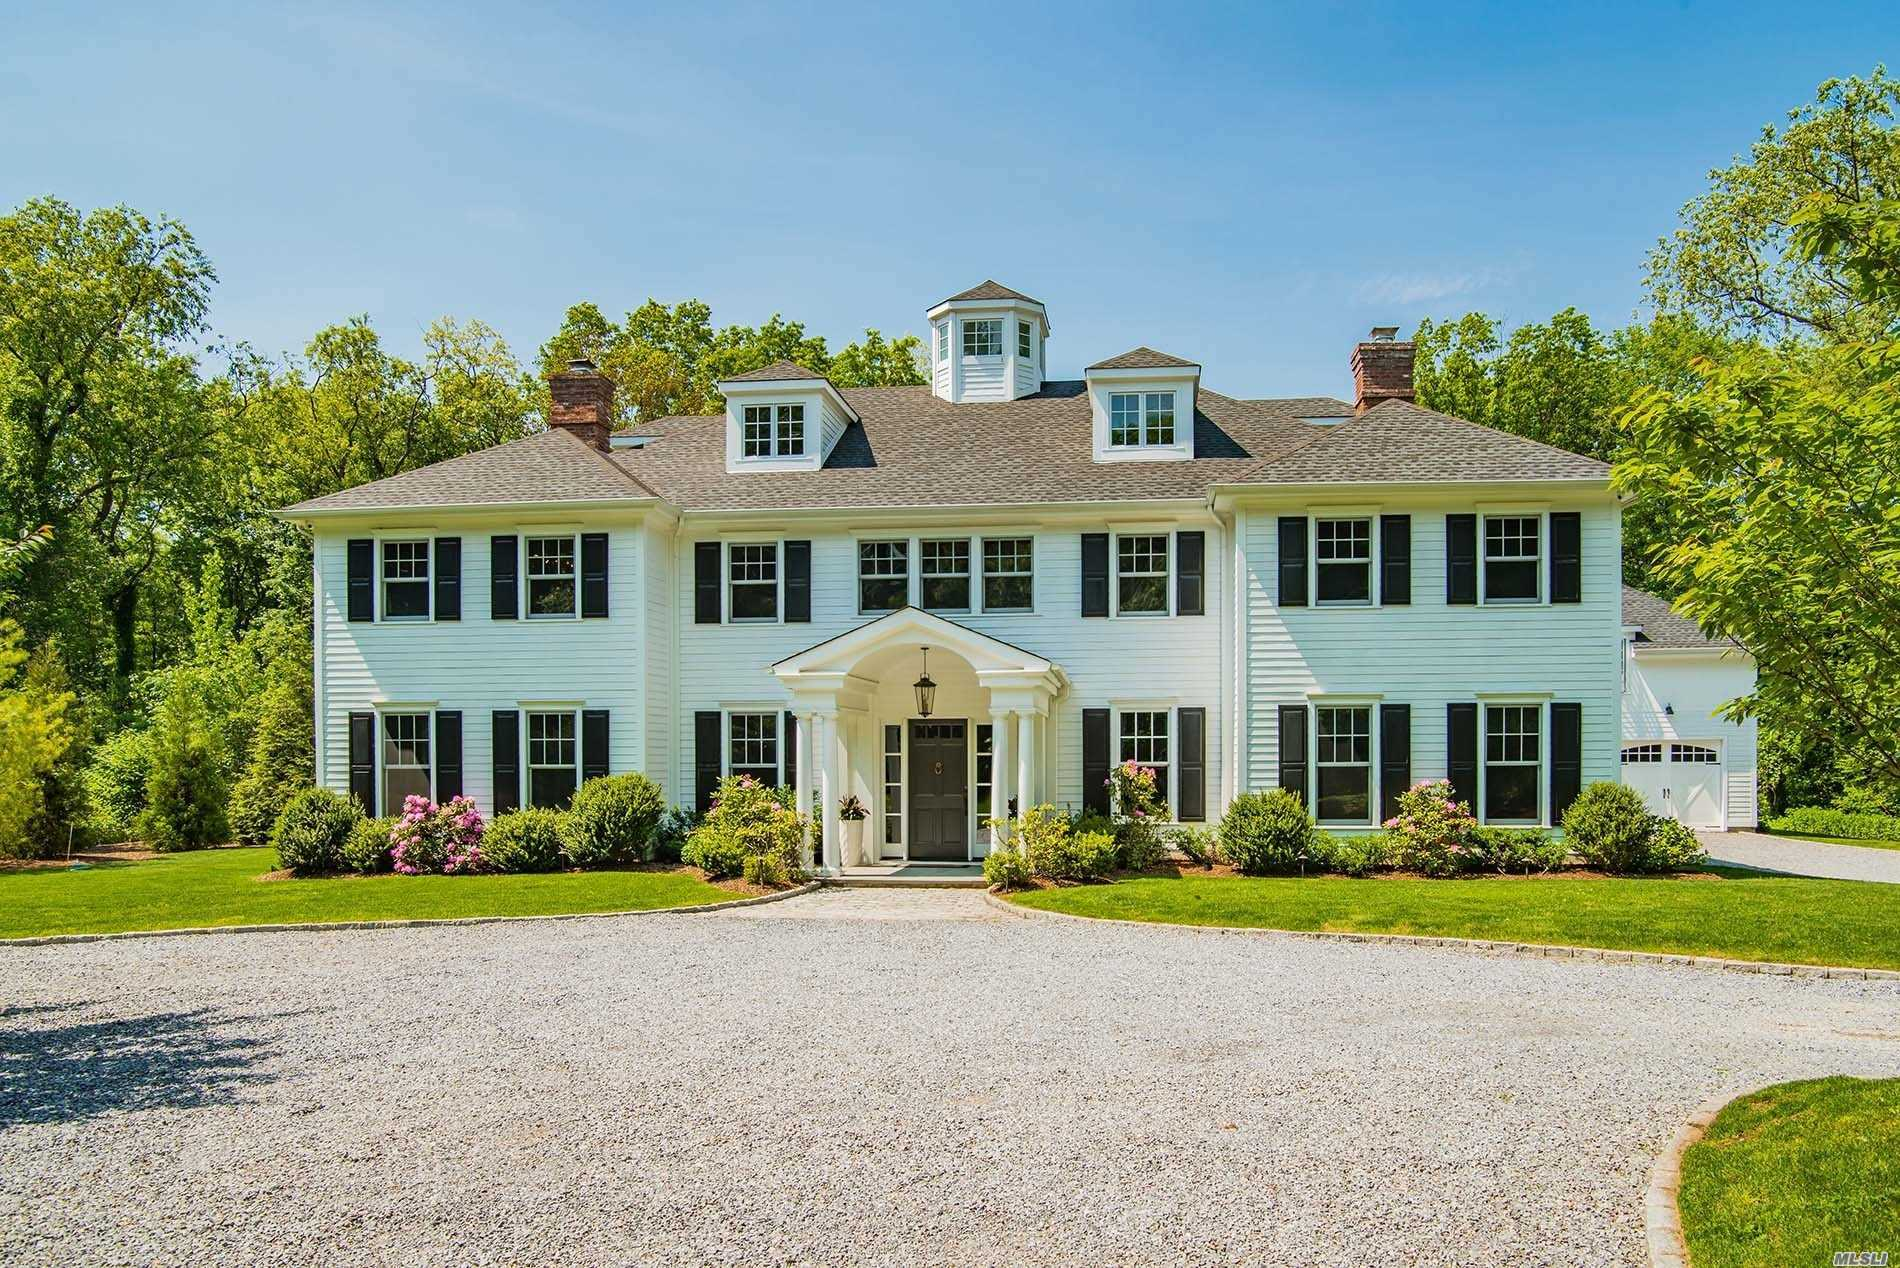 Exquisite 6 Bedroom Classic Center Hall Colonial On 2.38 Flat Manicured Acres W/ Specimen Trees & Landscaping. Separate Artist's Studio/Loft Over 2 Car Detached Heated Garage. State Of The Art Chef's Eik W/ High End Appliances. Luxurious Master Bedroom Ensuite W/ Spacious Walk In Closet & Fp. Radiant Heat & Beautiful Mill Work Throughout House. Gorgeous Full Finished Basement W/ Media Center & Cedar Closets. Special Outdoor Lighting System. Perfect Location For Commuting!